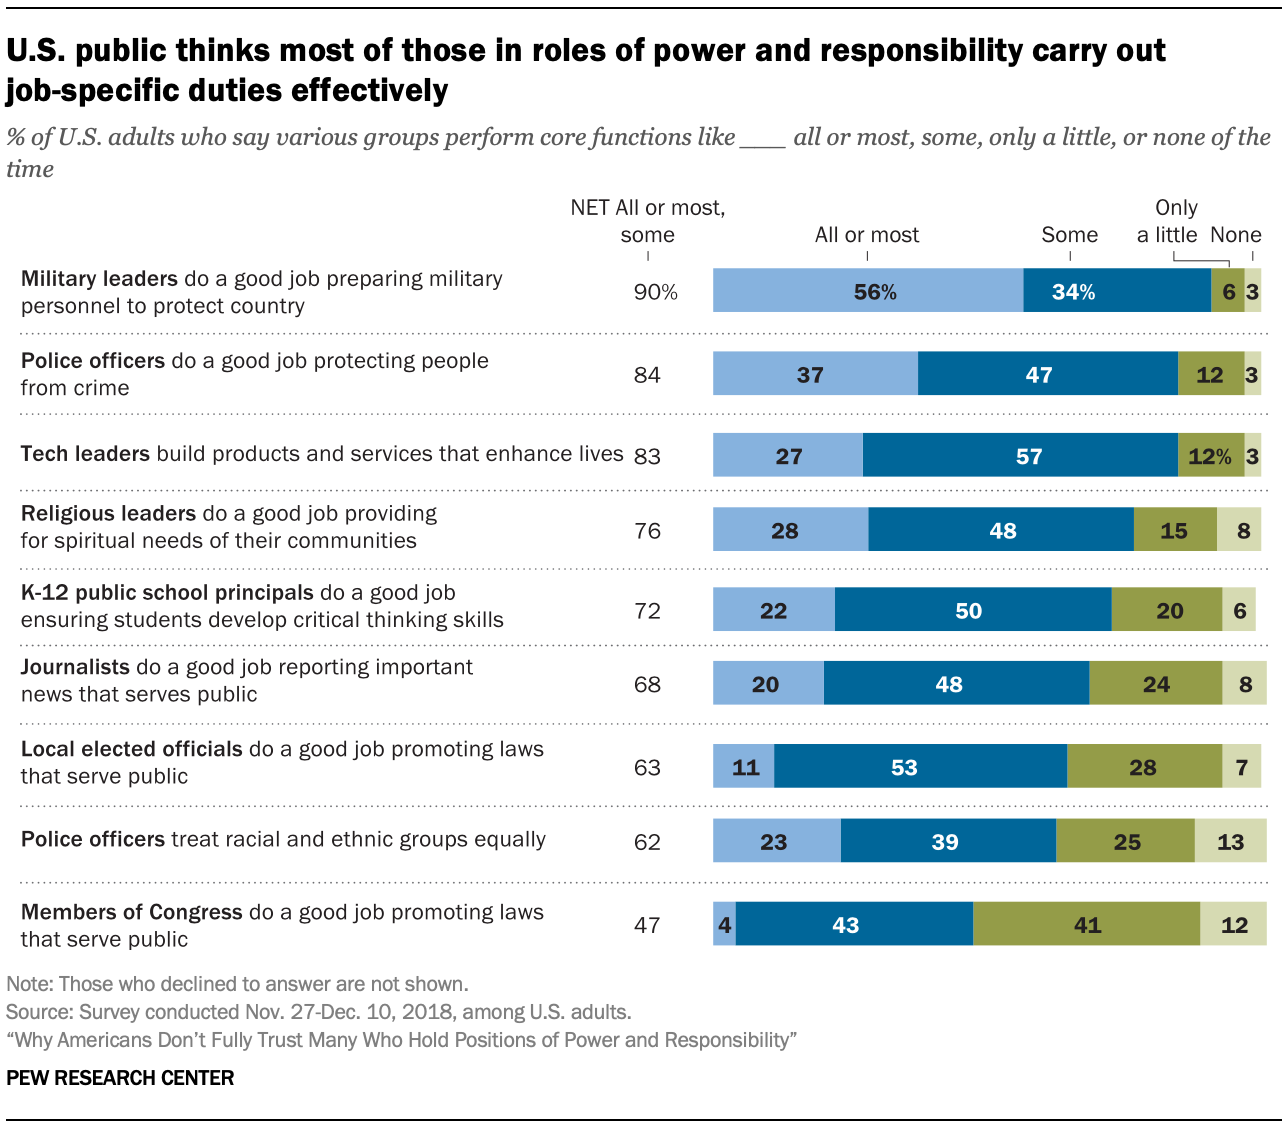 U.S. public thinks most of those in roles of power and responsibility carry out job-specific duties effectively